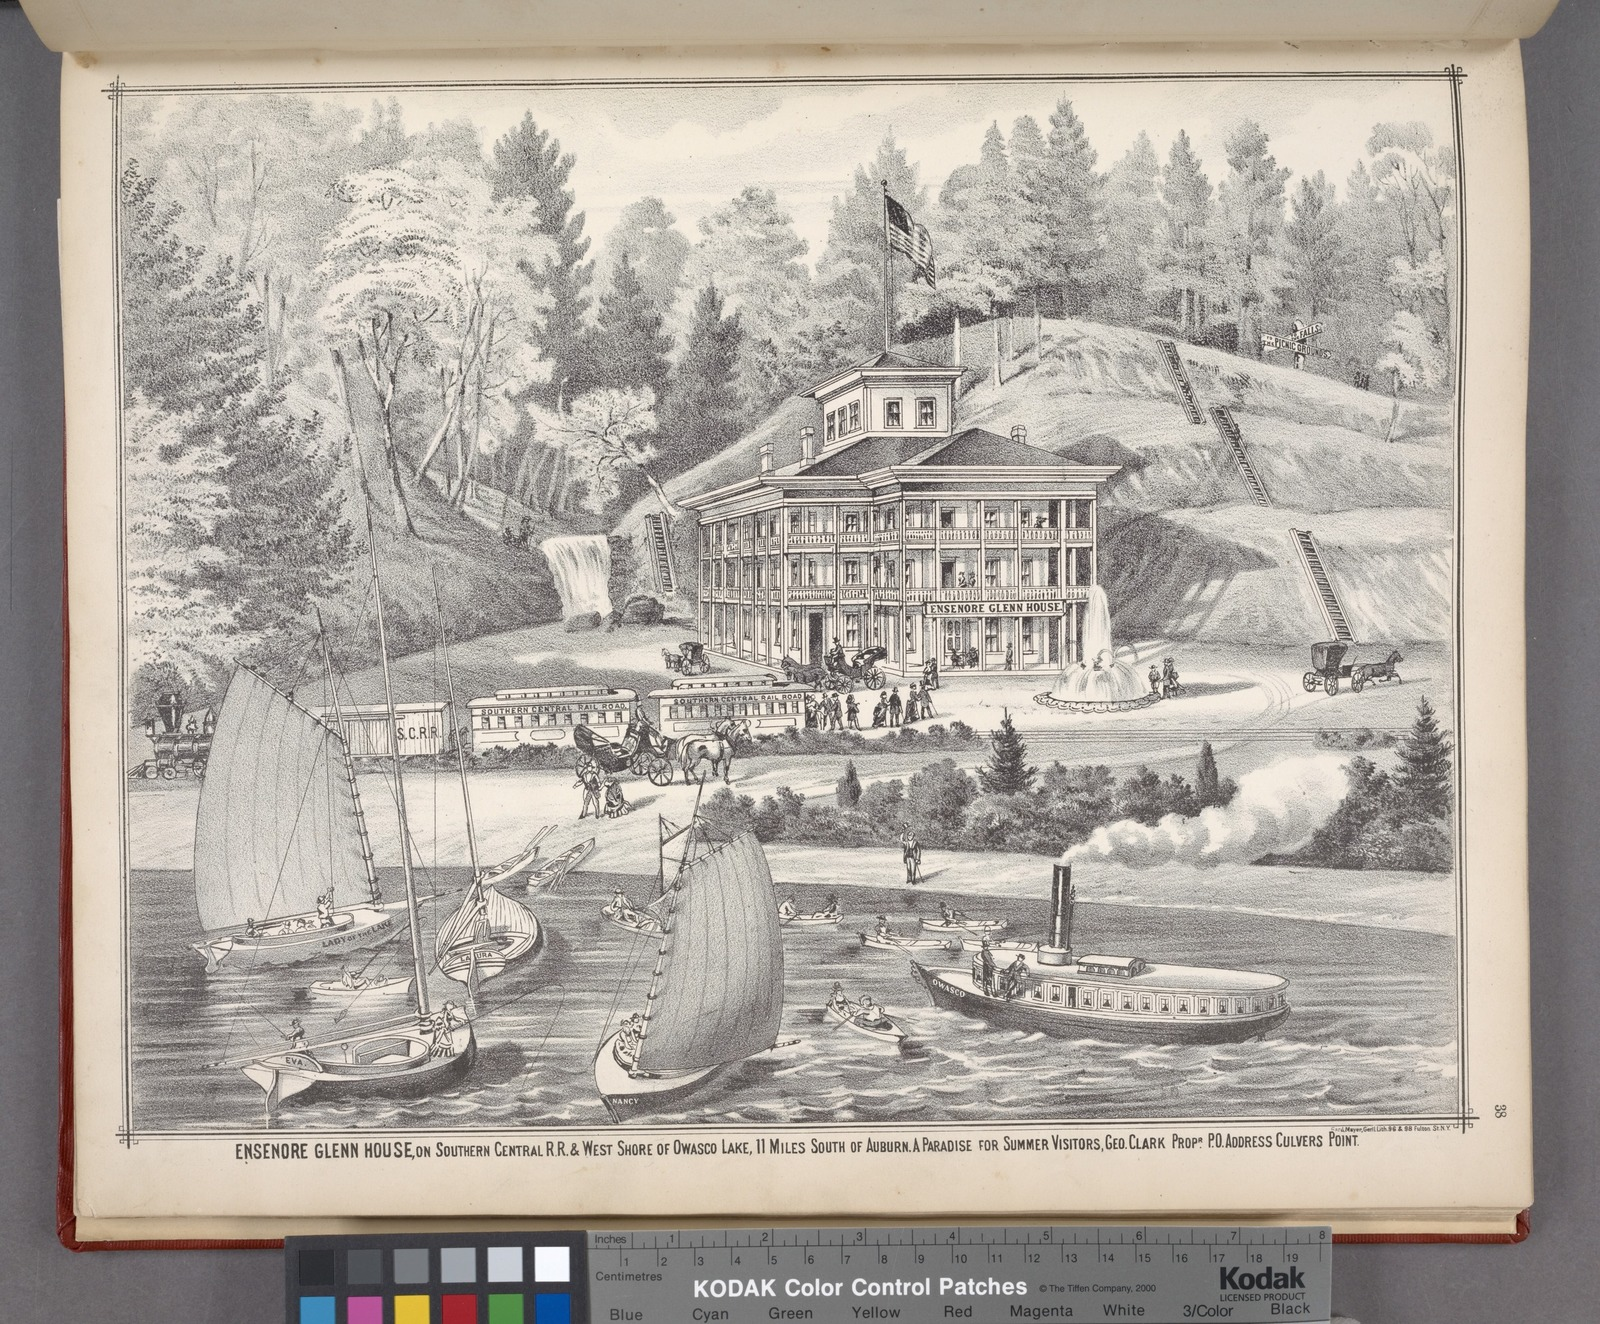 """""""Ensenore Glenn House, on Southern Central R.R. & West Shore of Owasco Lake, 11 Miles South of Auburn. A Paradise for Summer Visitors, Geo. Clark Propr. P.O. Address Culvers Point."""""""